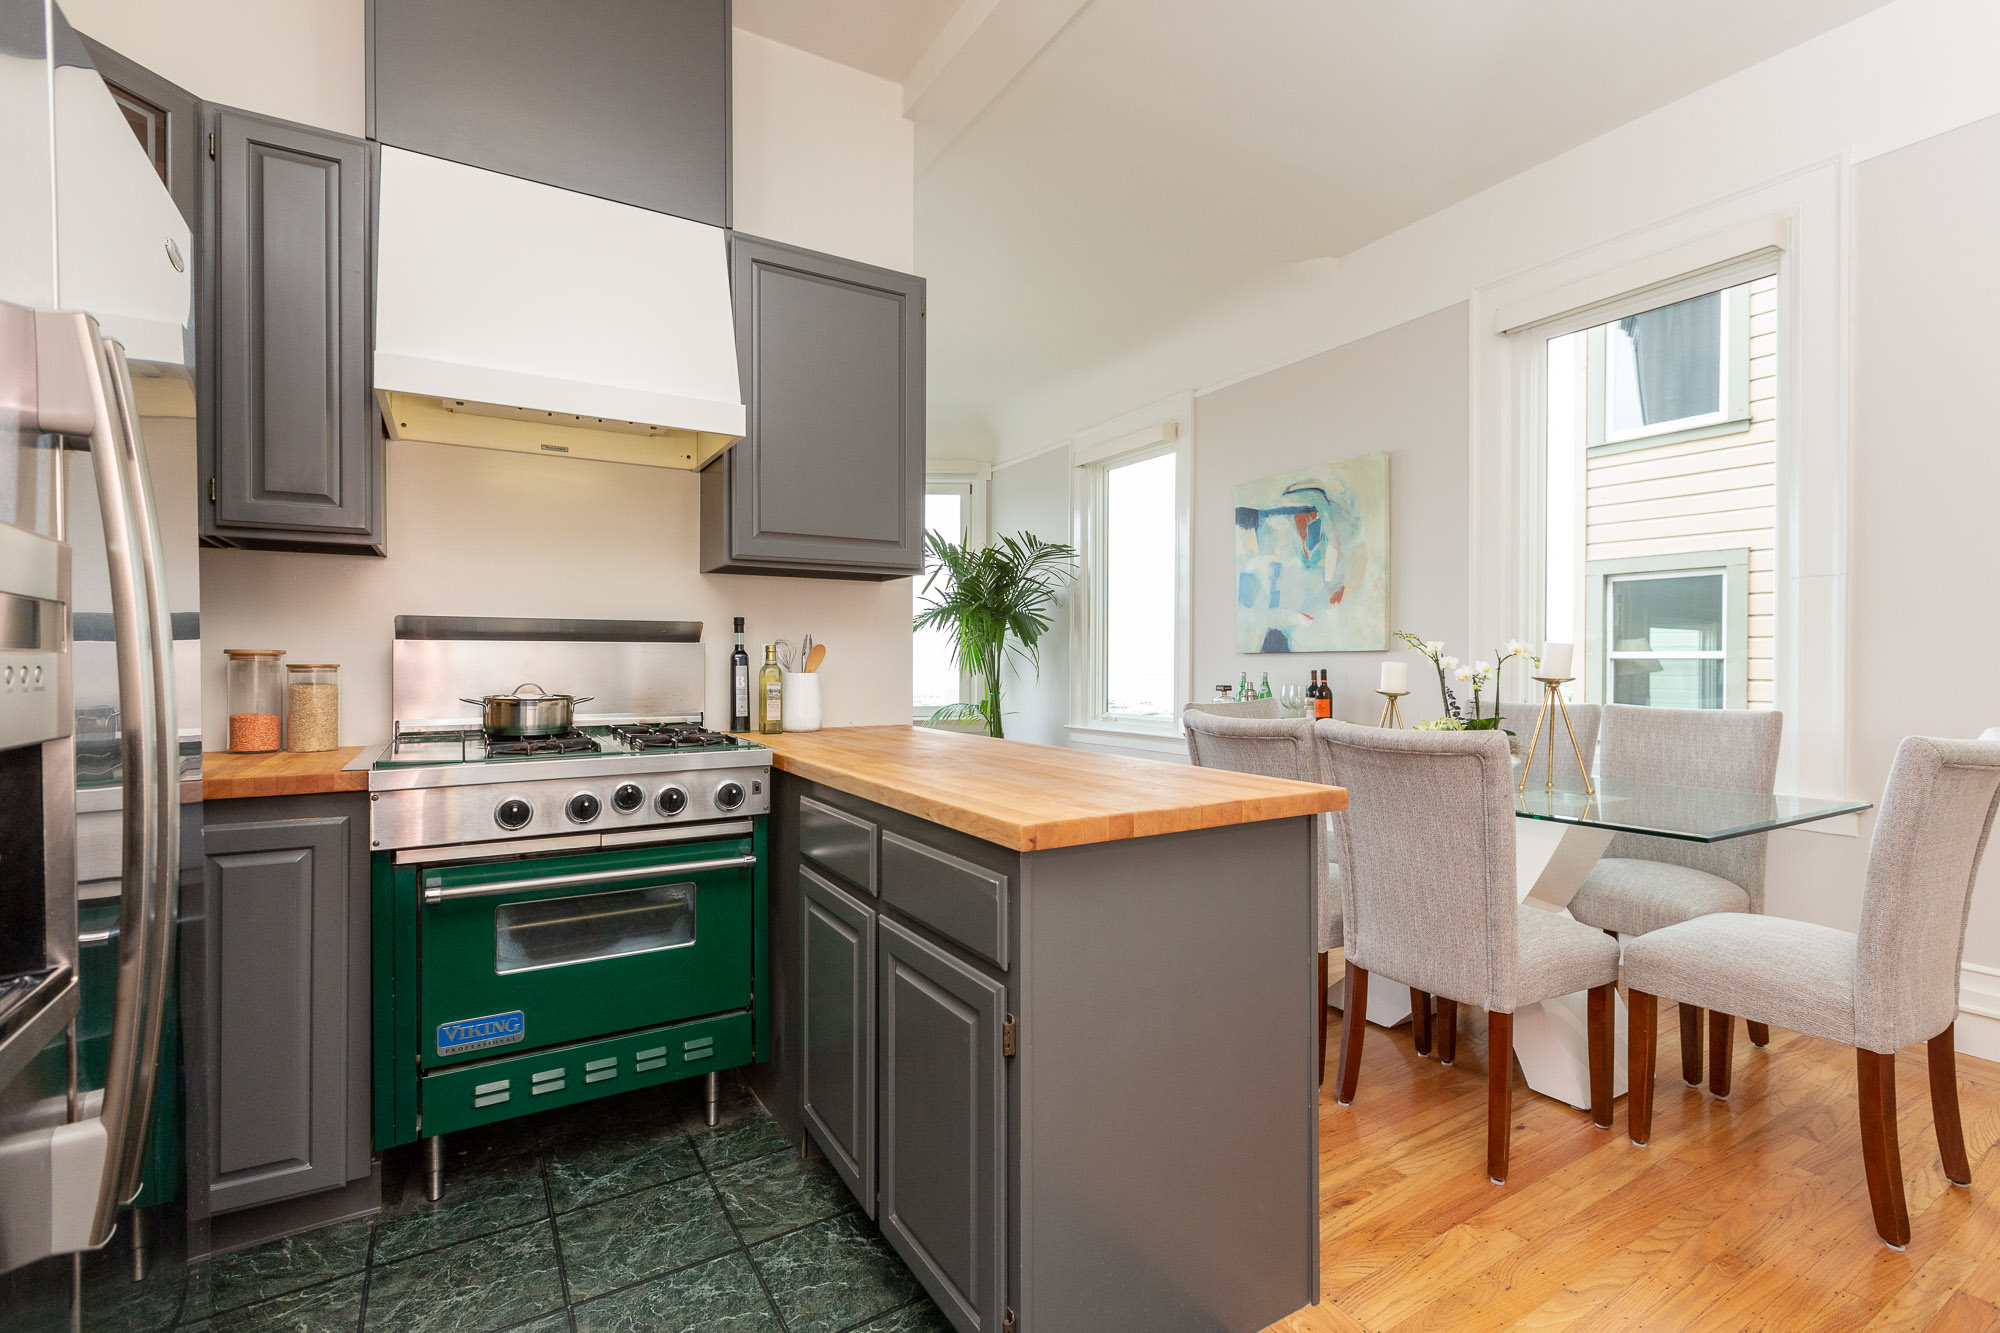 972 Union Street, San Francisco - Kitchen 2